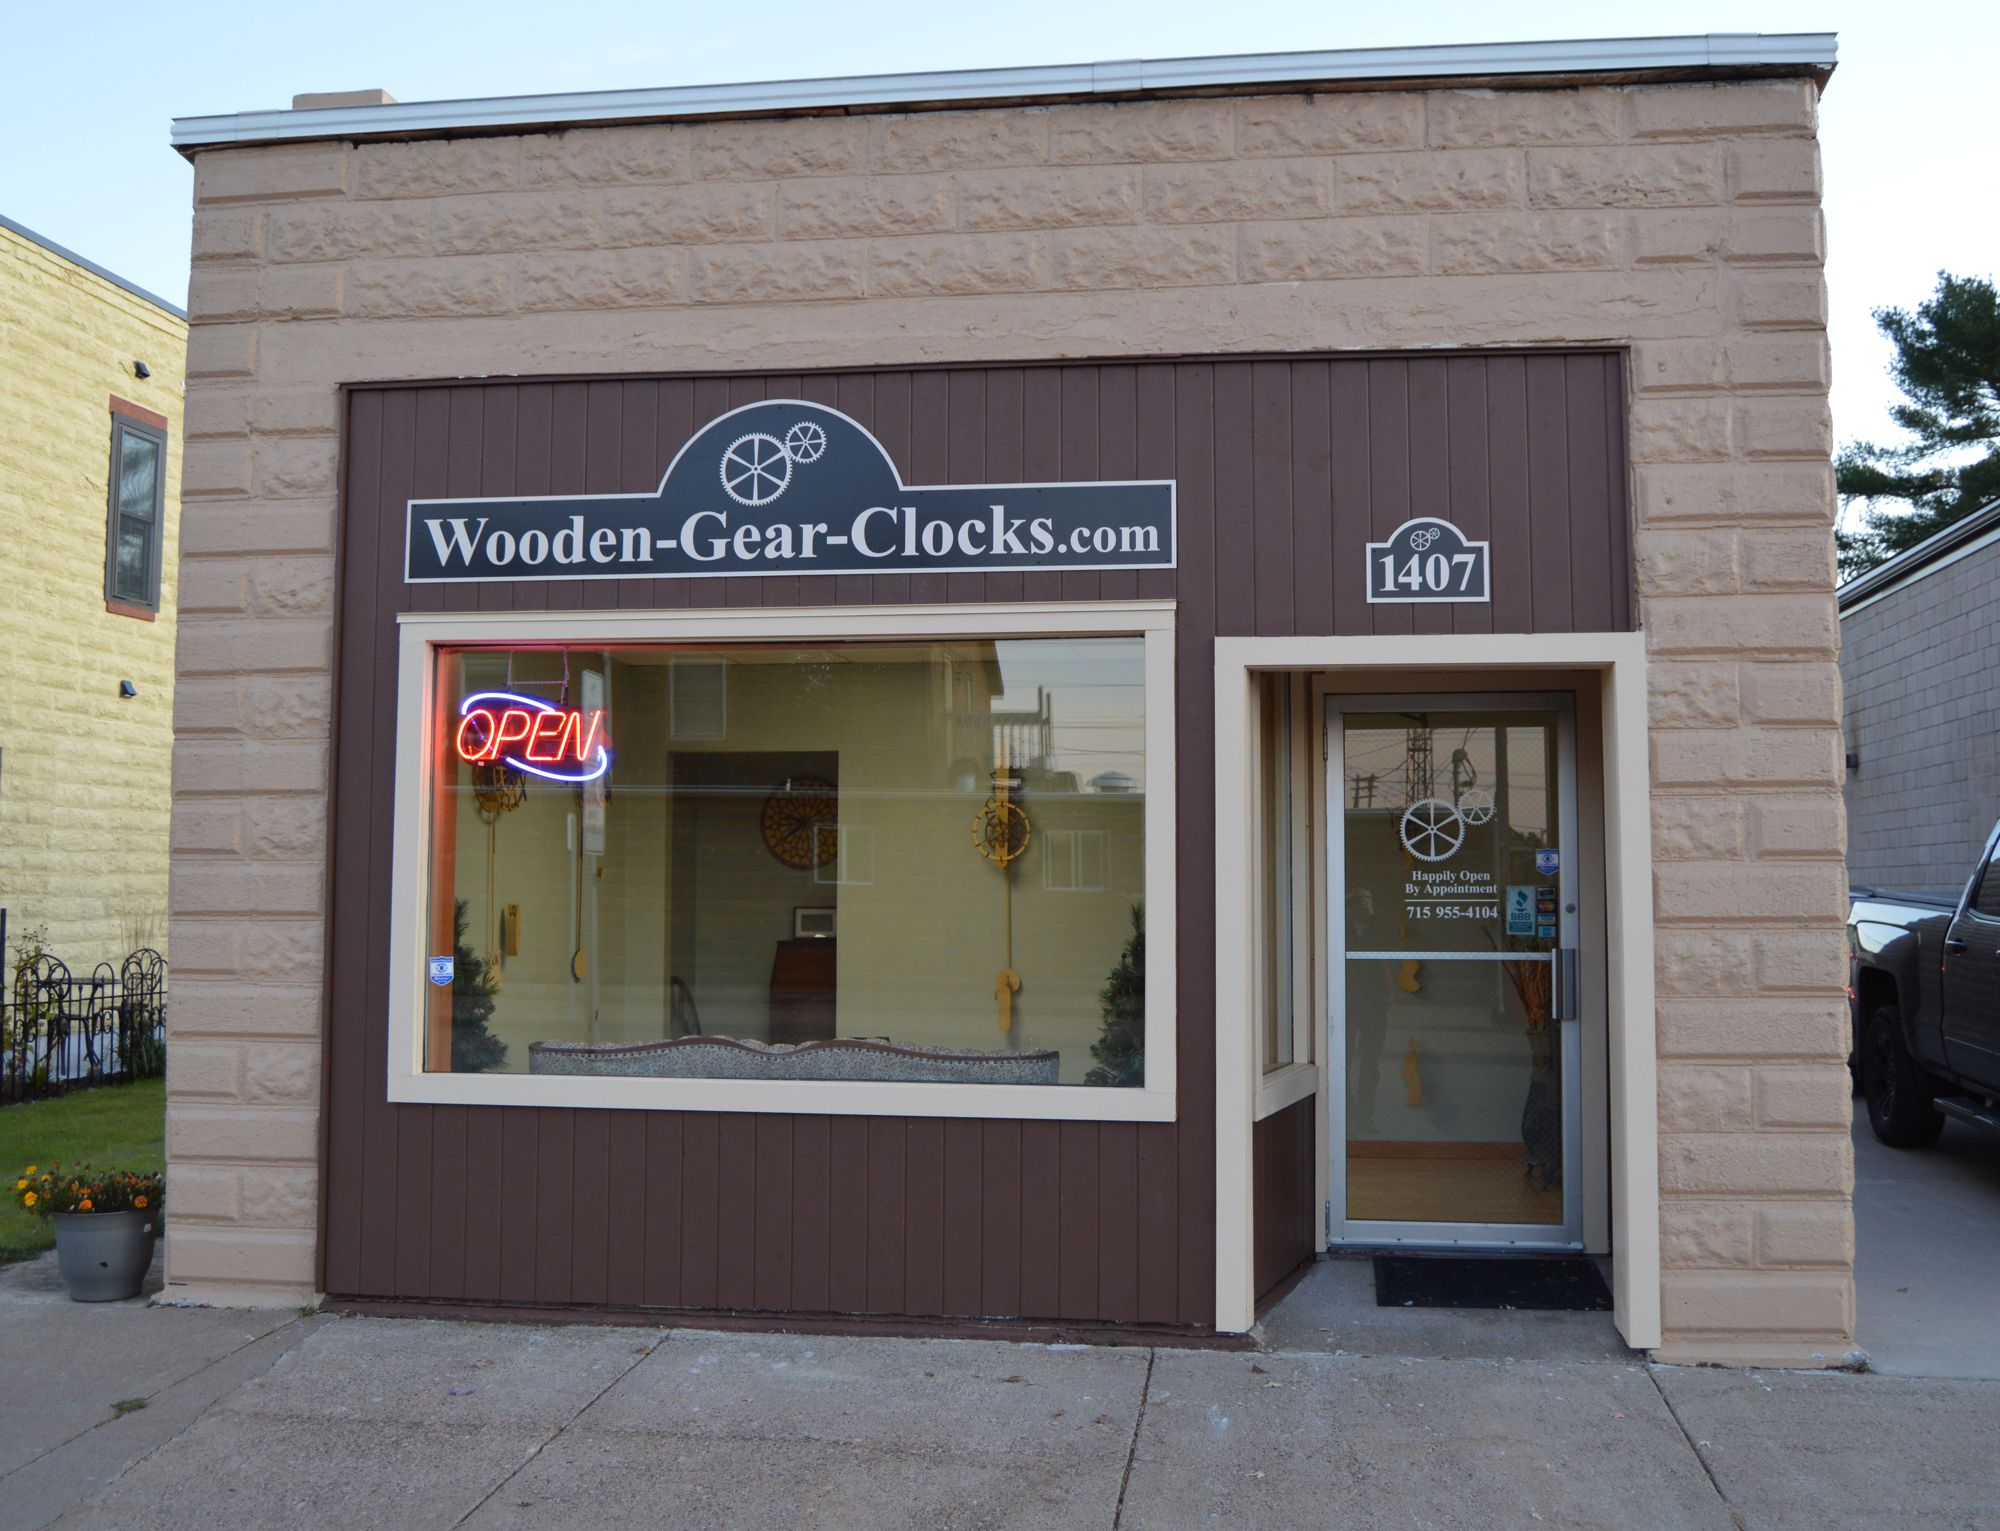 Wooden-Gear-Clocks store